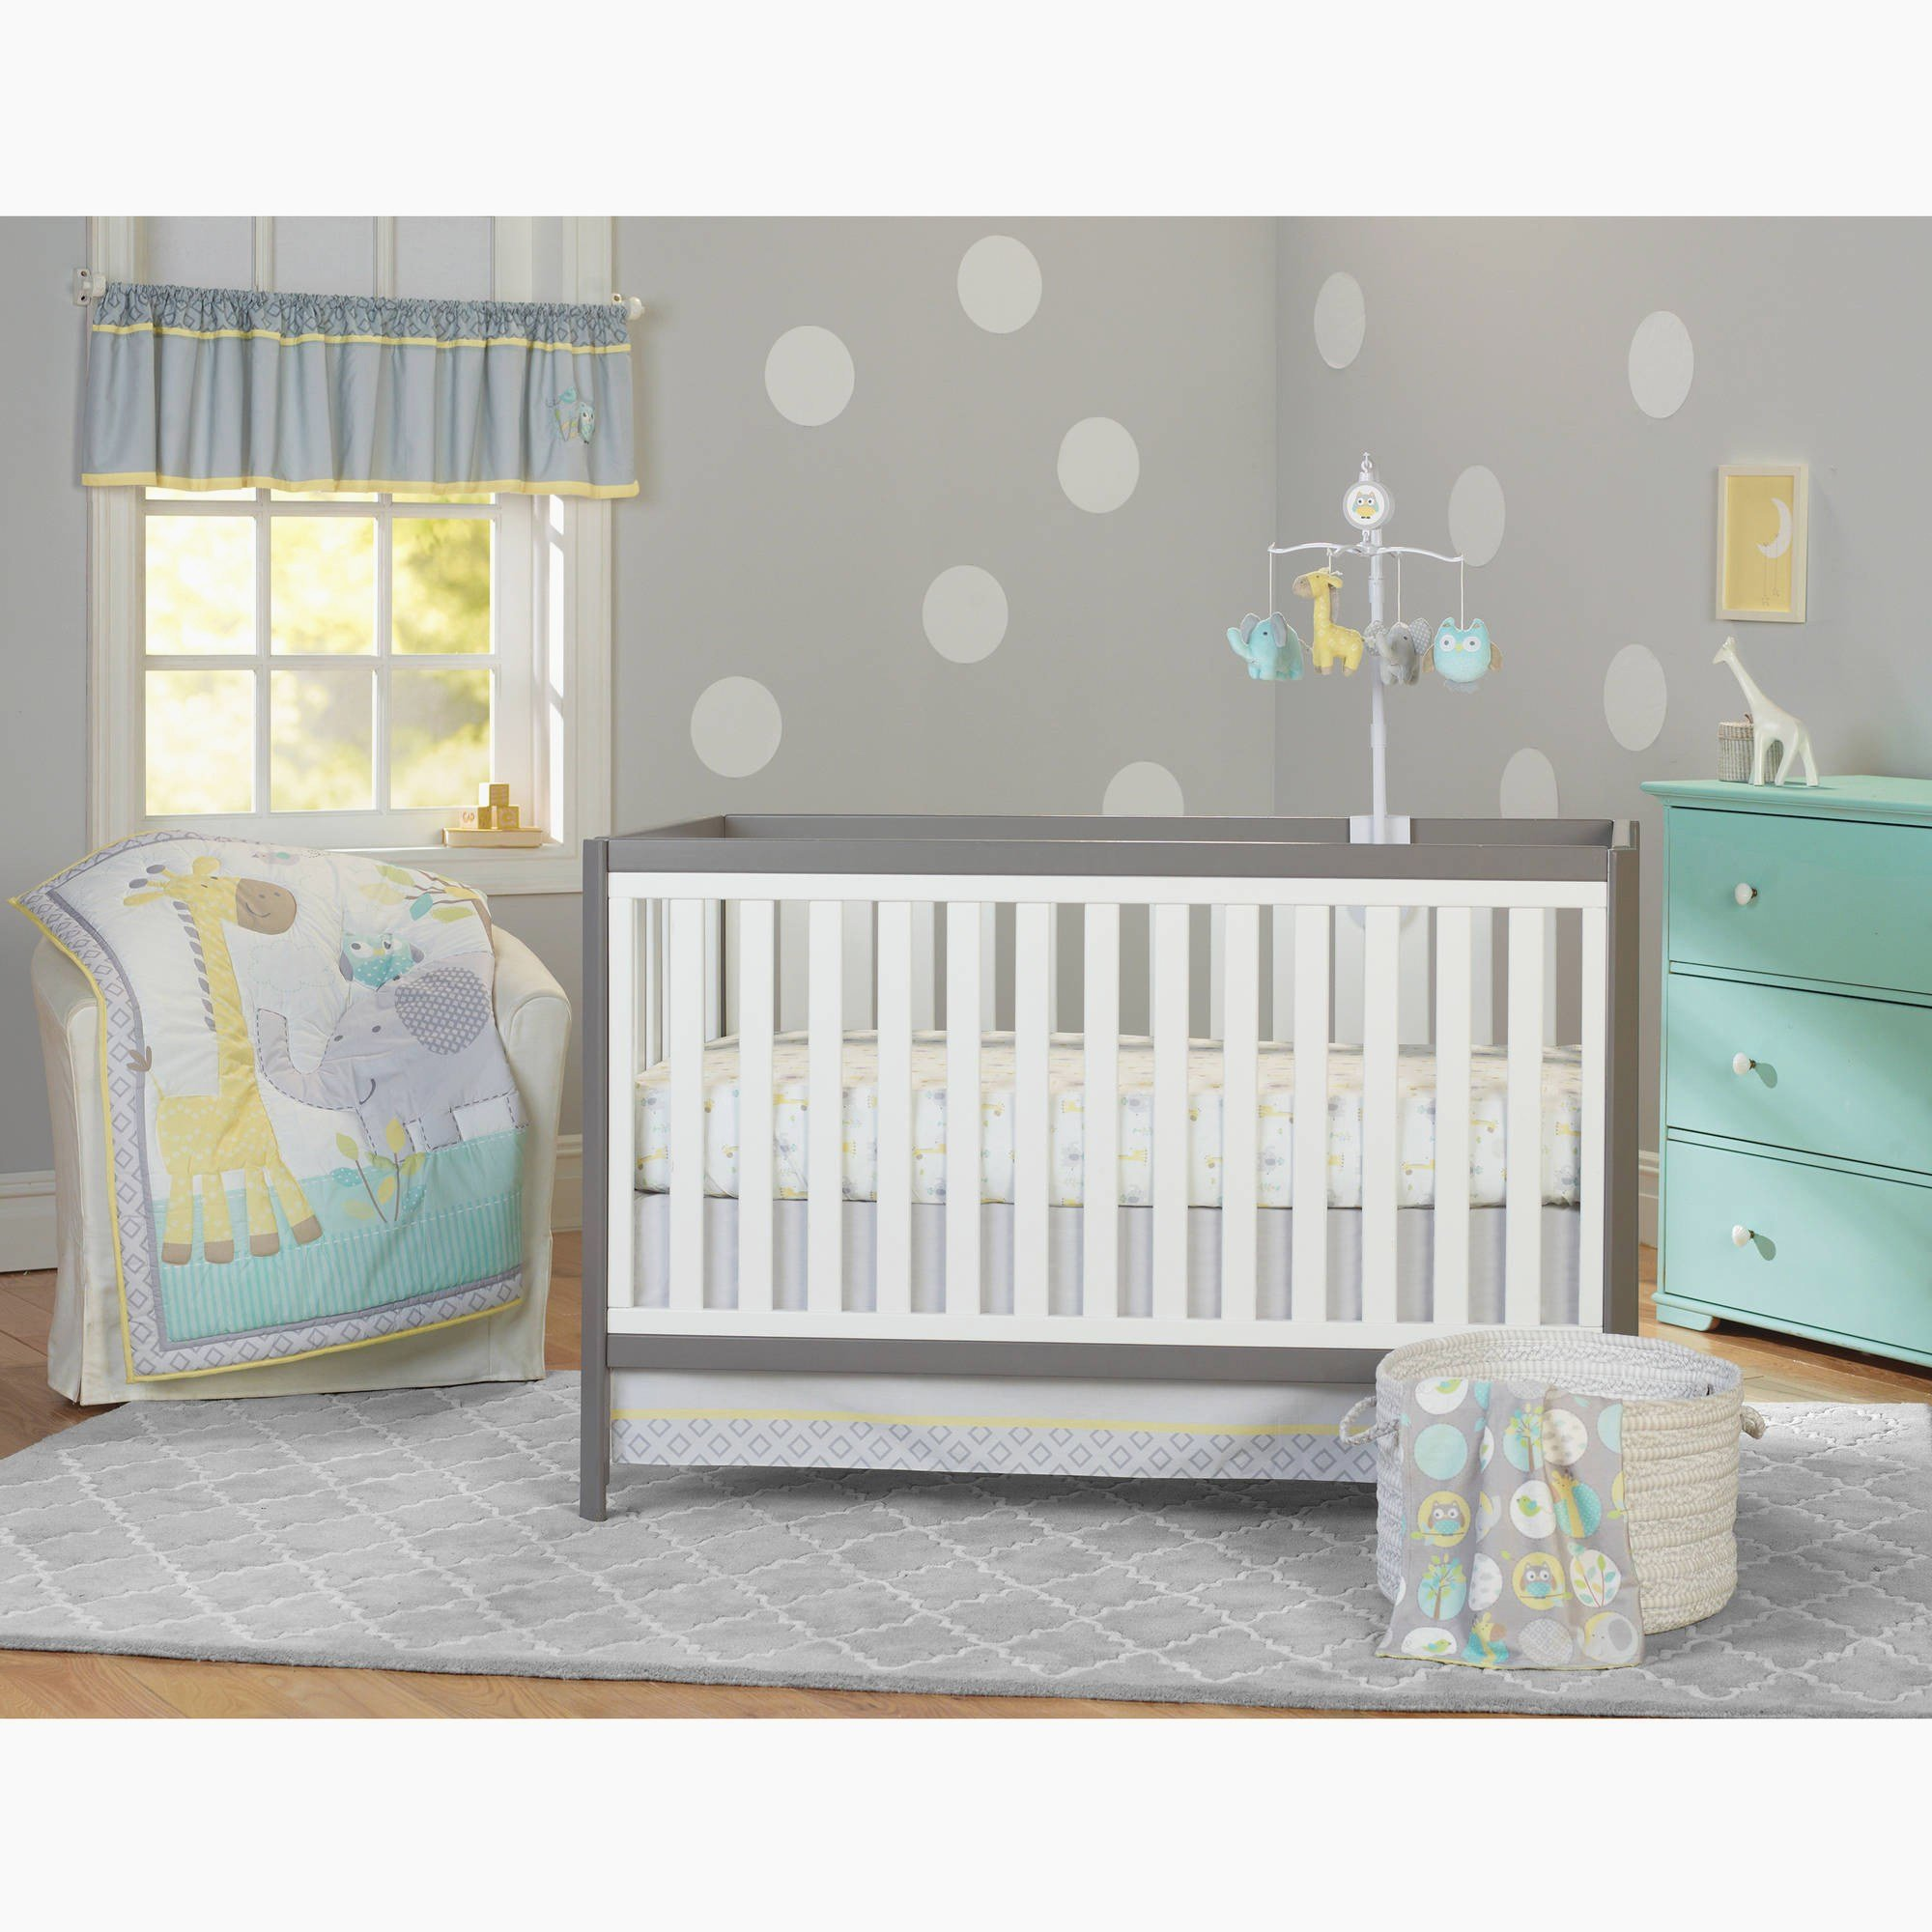 Best Bedroom Cozy Target Cribs Clearance For Modern Kid With Pictures